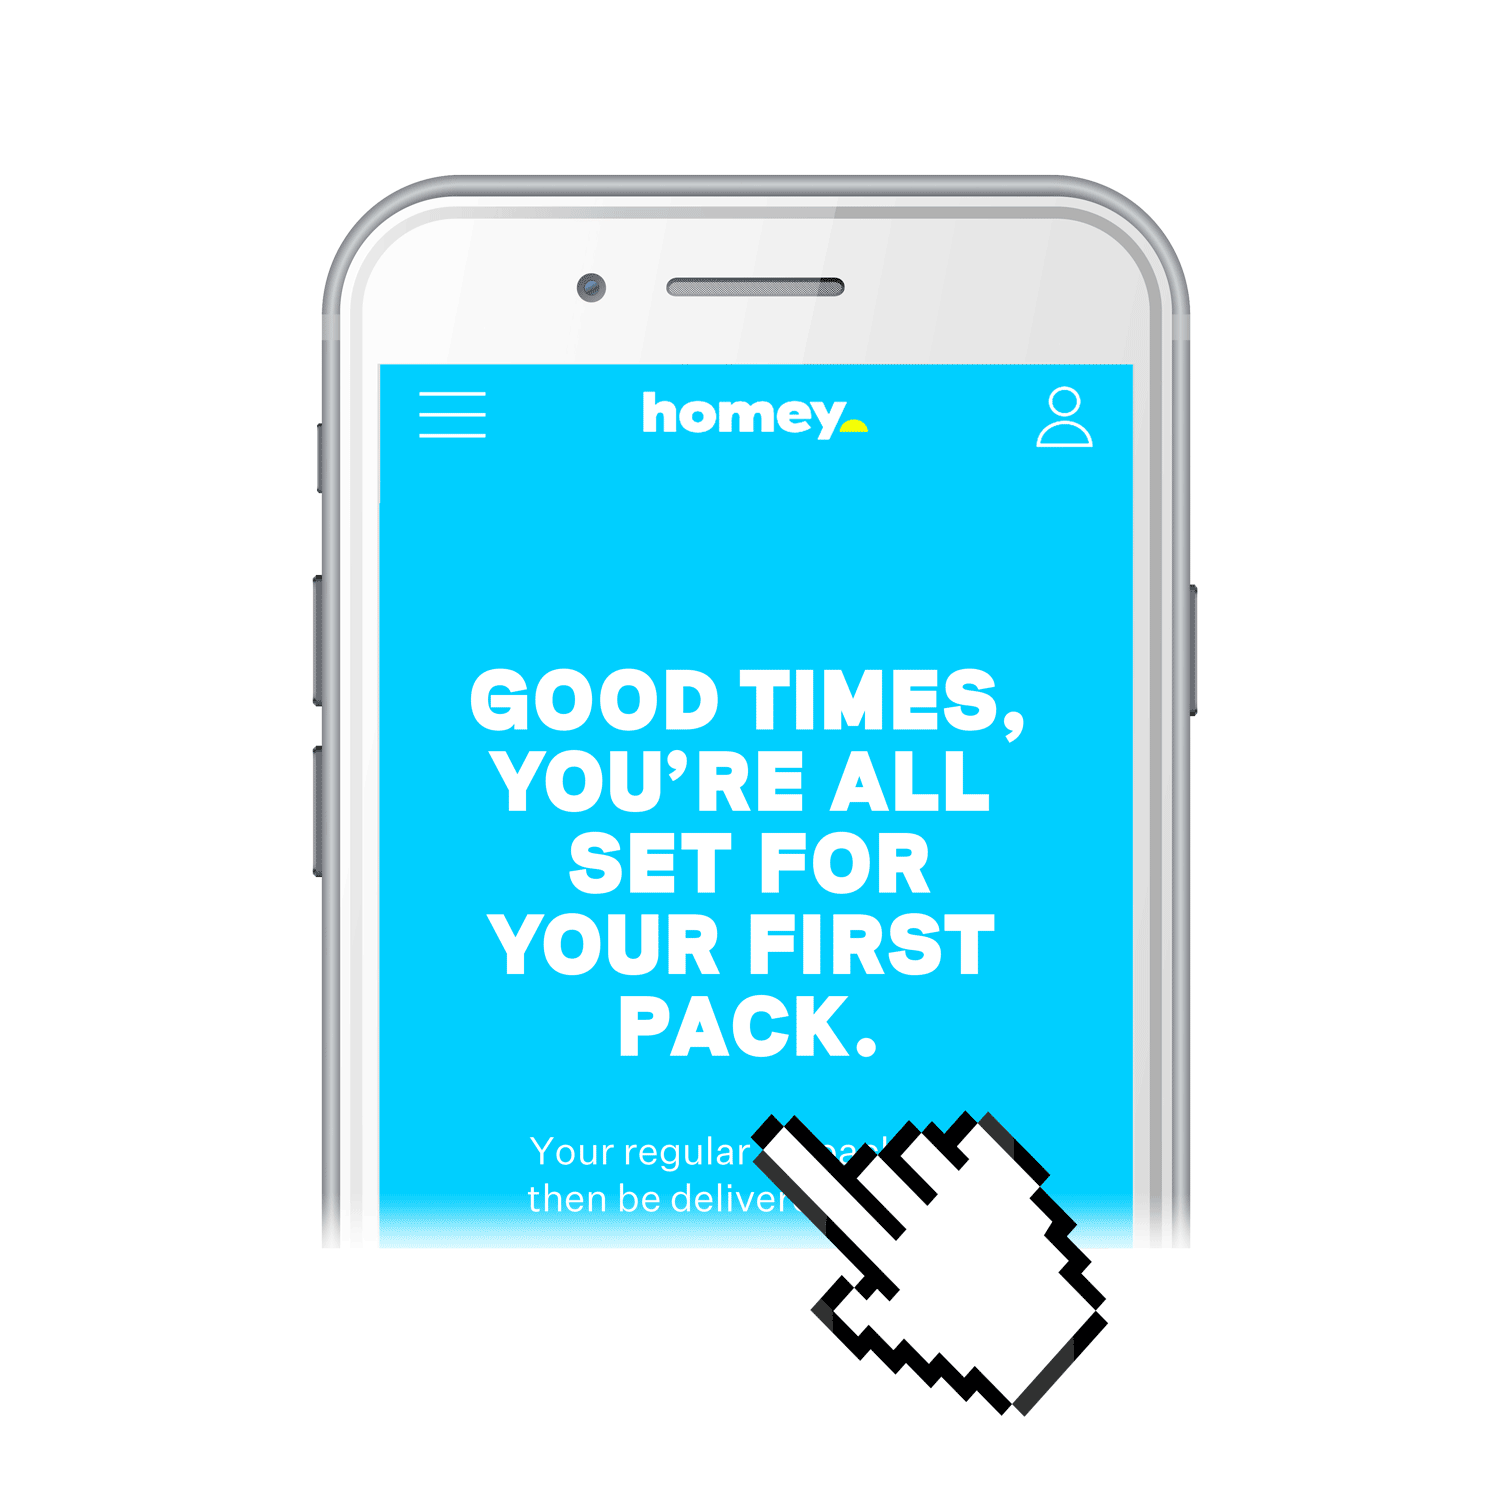 A mobile showing the Homey website saying 'good times, you're all set for your first pack'.